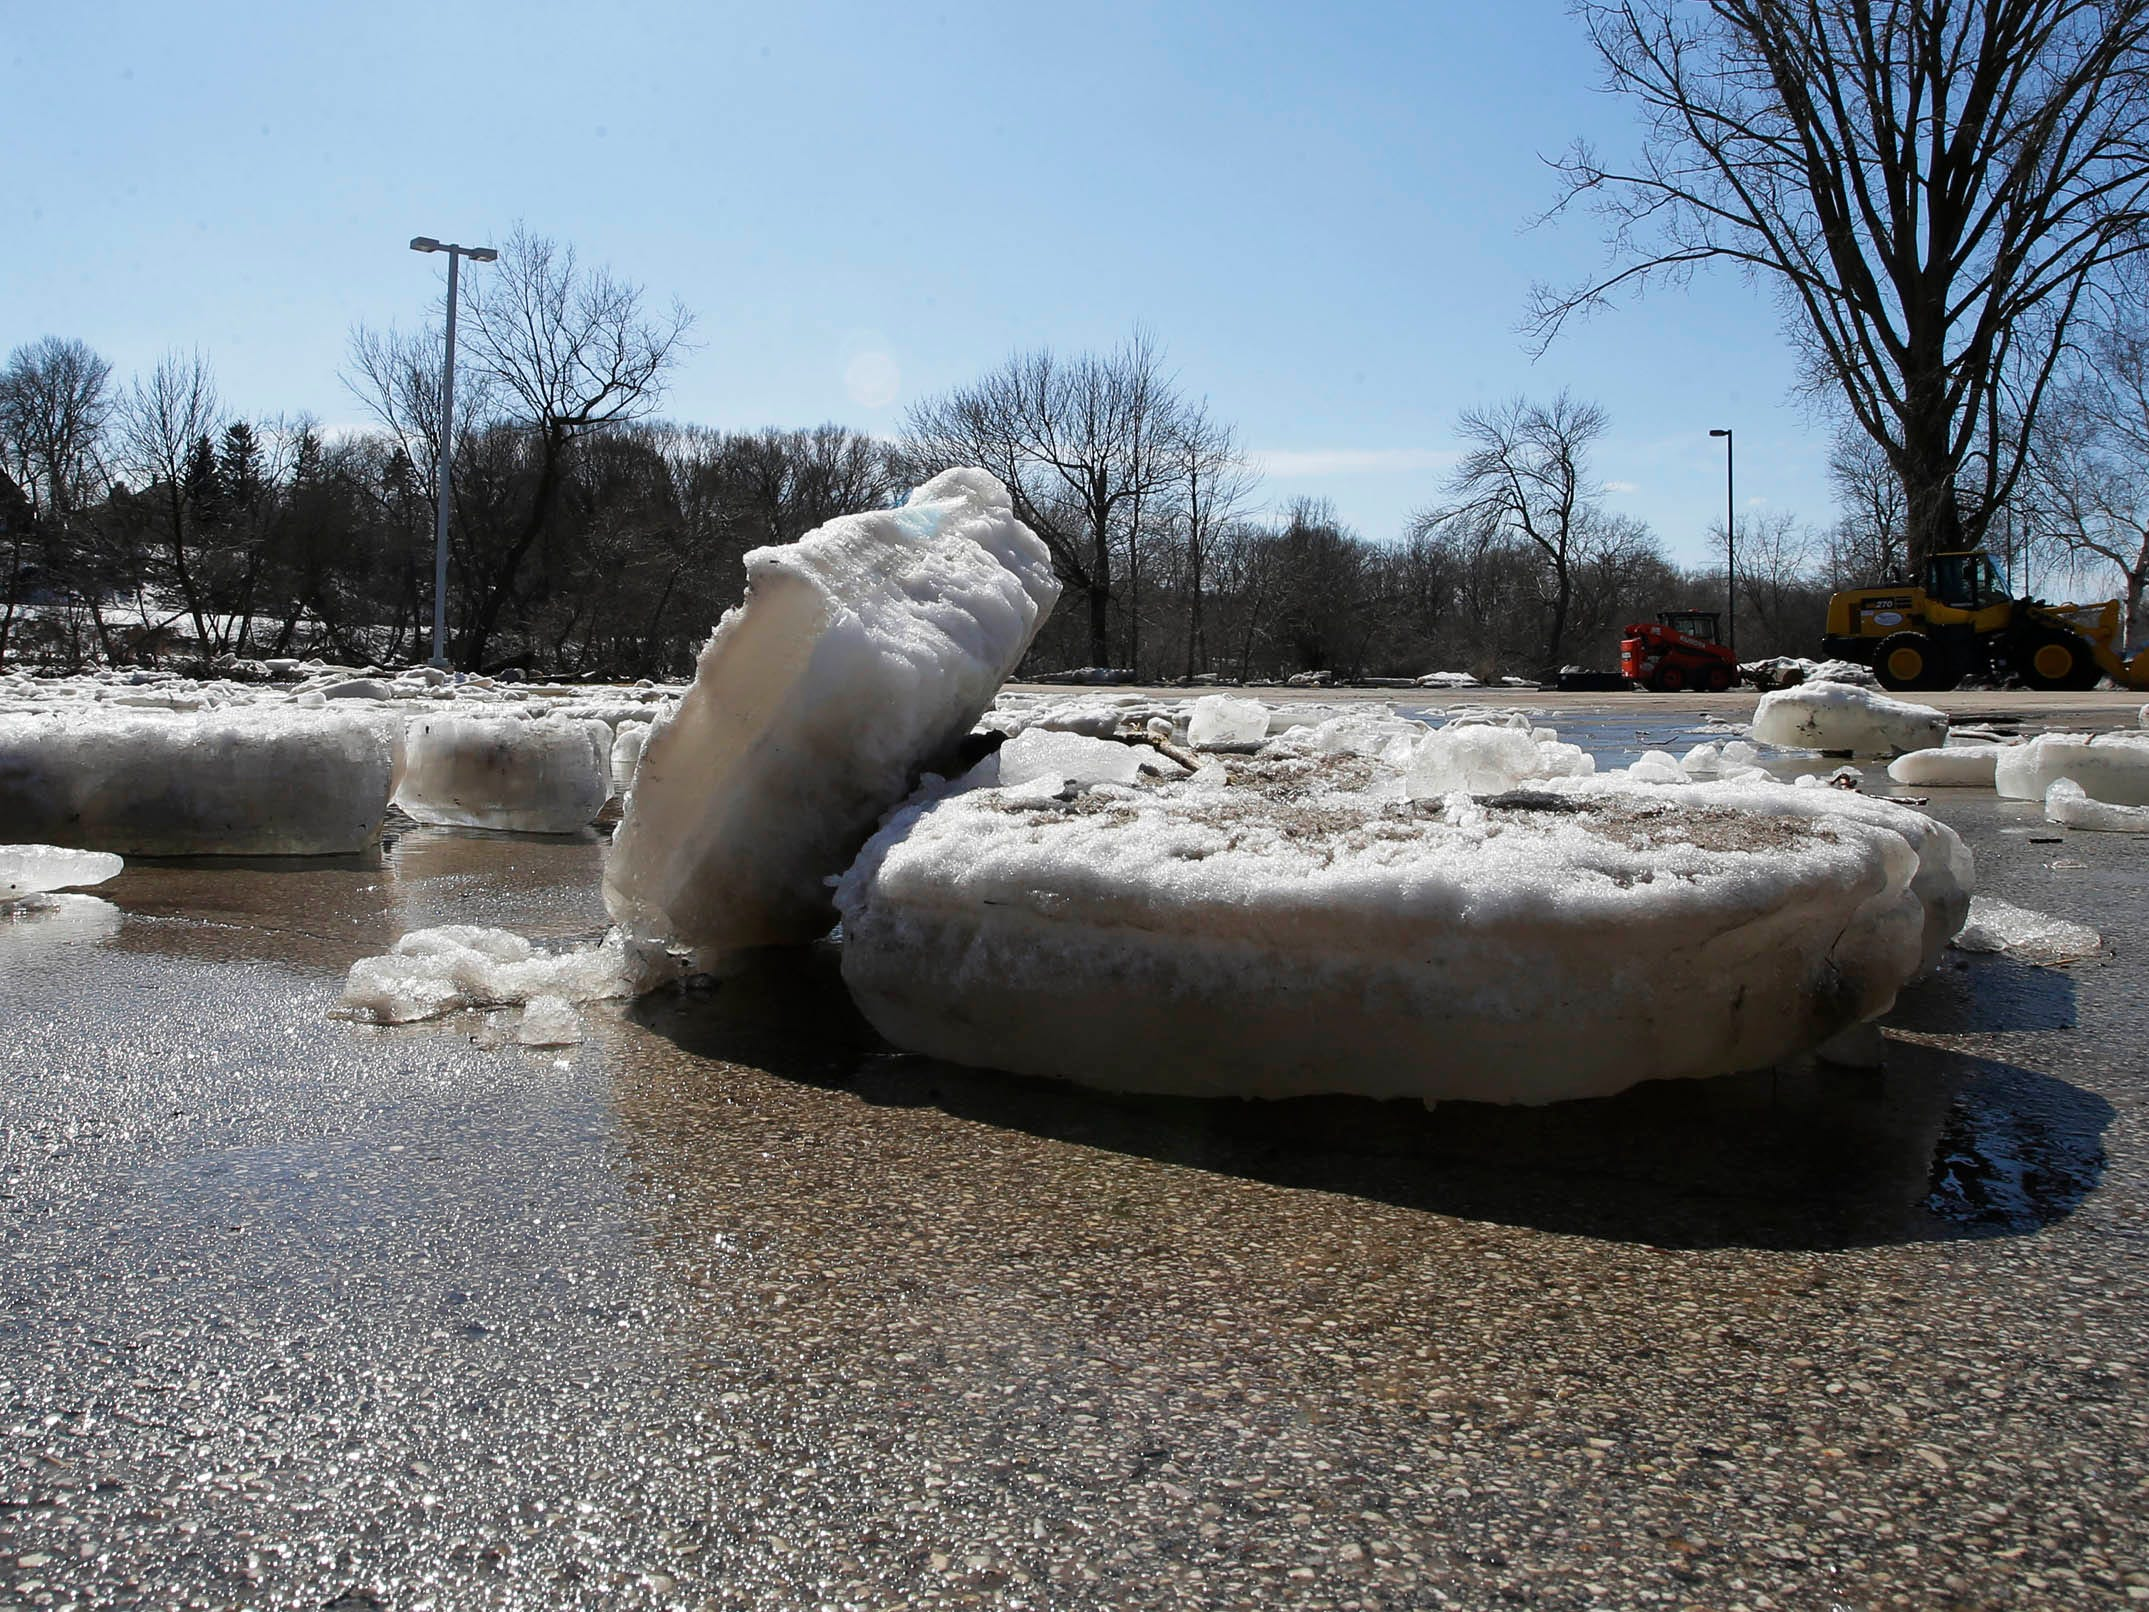 Huge slabs of ice cover the parking lot at Nemschoff, Tuesday, March 19, 2019, in Sheboygan, Wis.